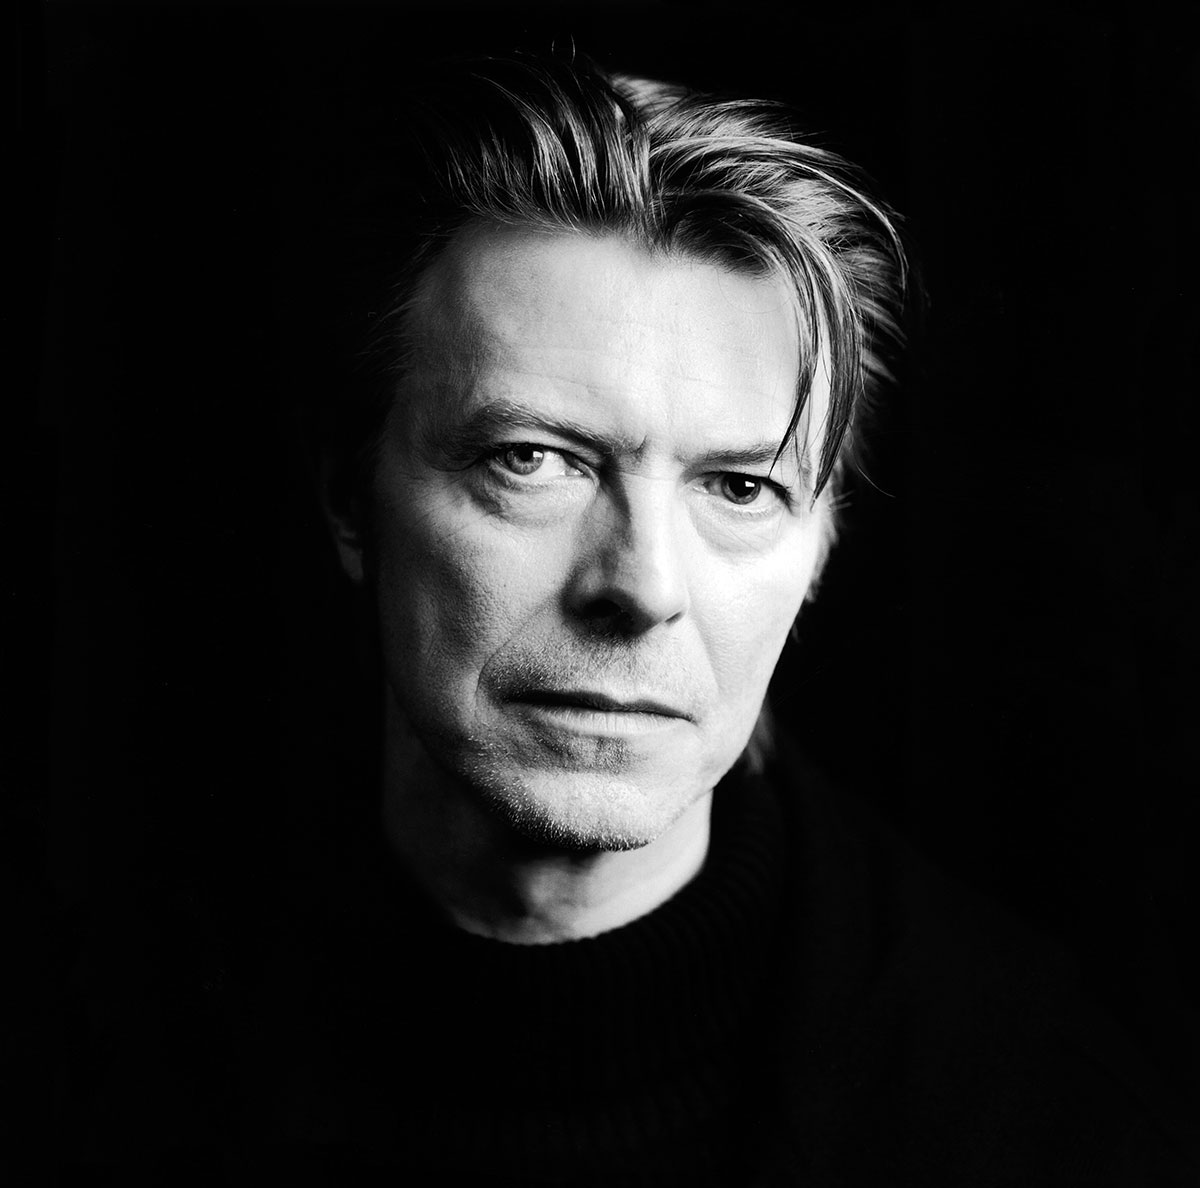 Heros by David Bowie